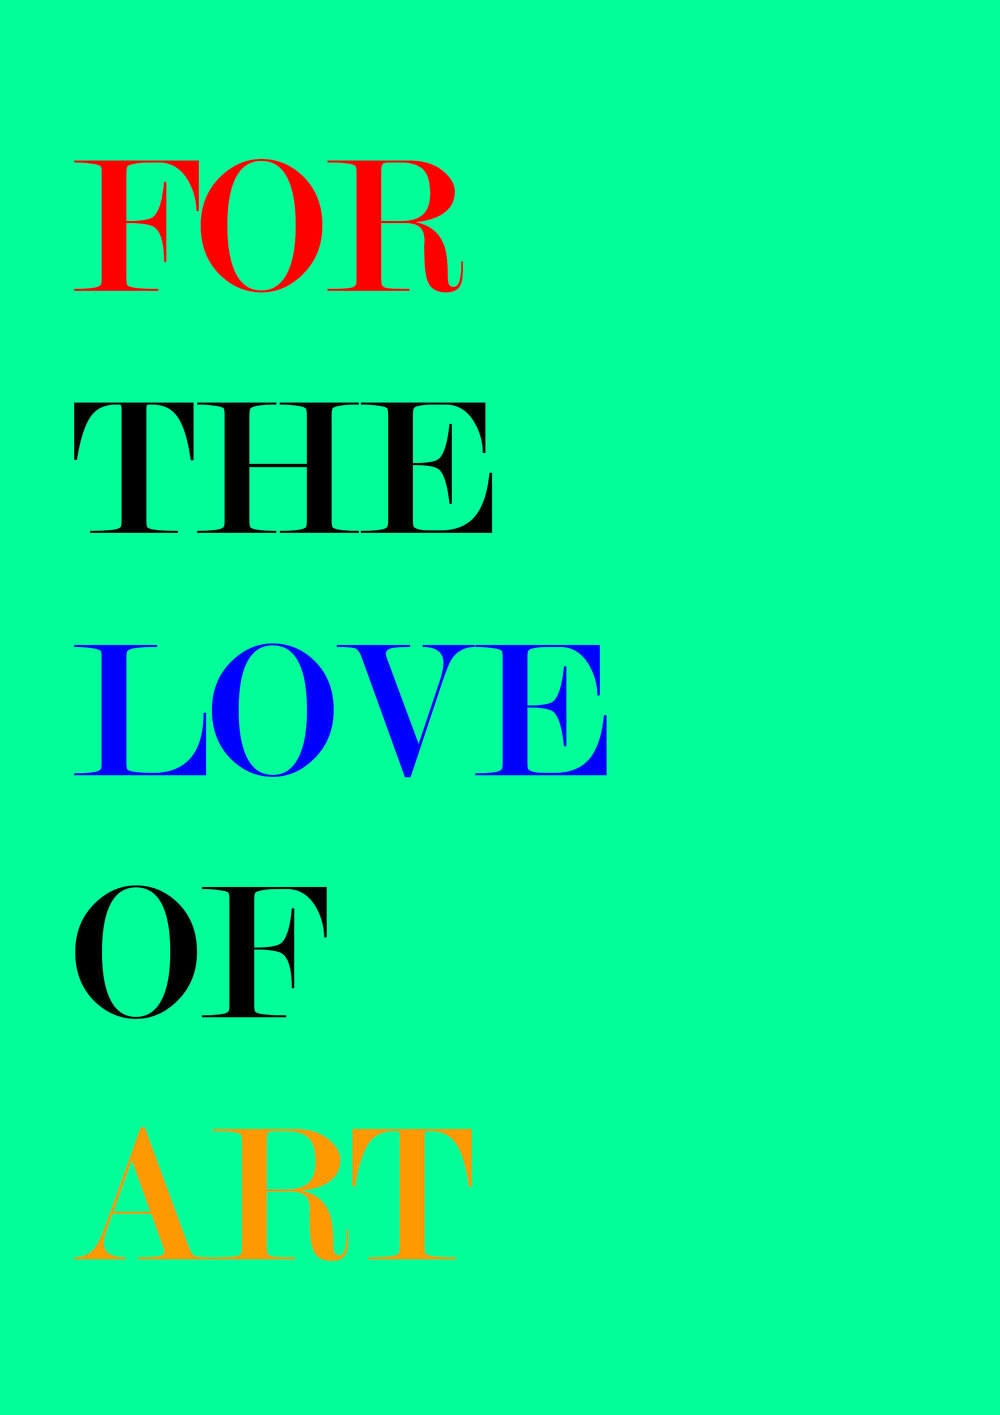 All content in this book has been produced for non-profit educational purposes and for free distribution.  The text on this book has been developed as part of the For the Love of Art course by FICA and may be used, modified, and distributed freely on condition that anything derived from it is bound by the same condition. Images of artworks: FICA has no rights over any images in this book, with the author/artist being the rightful copyright holder of their works represented.   Text by Nilanjana Nandy and Bhooma Padmanabhan Illustrations by Nilanjanan Nandy Book design by Bhooma Padmanabhan